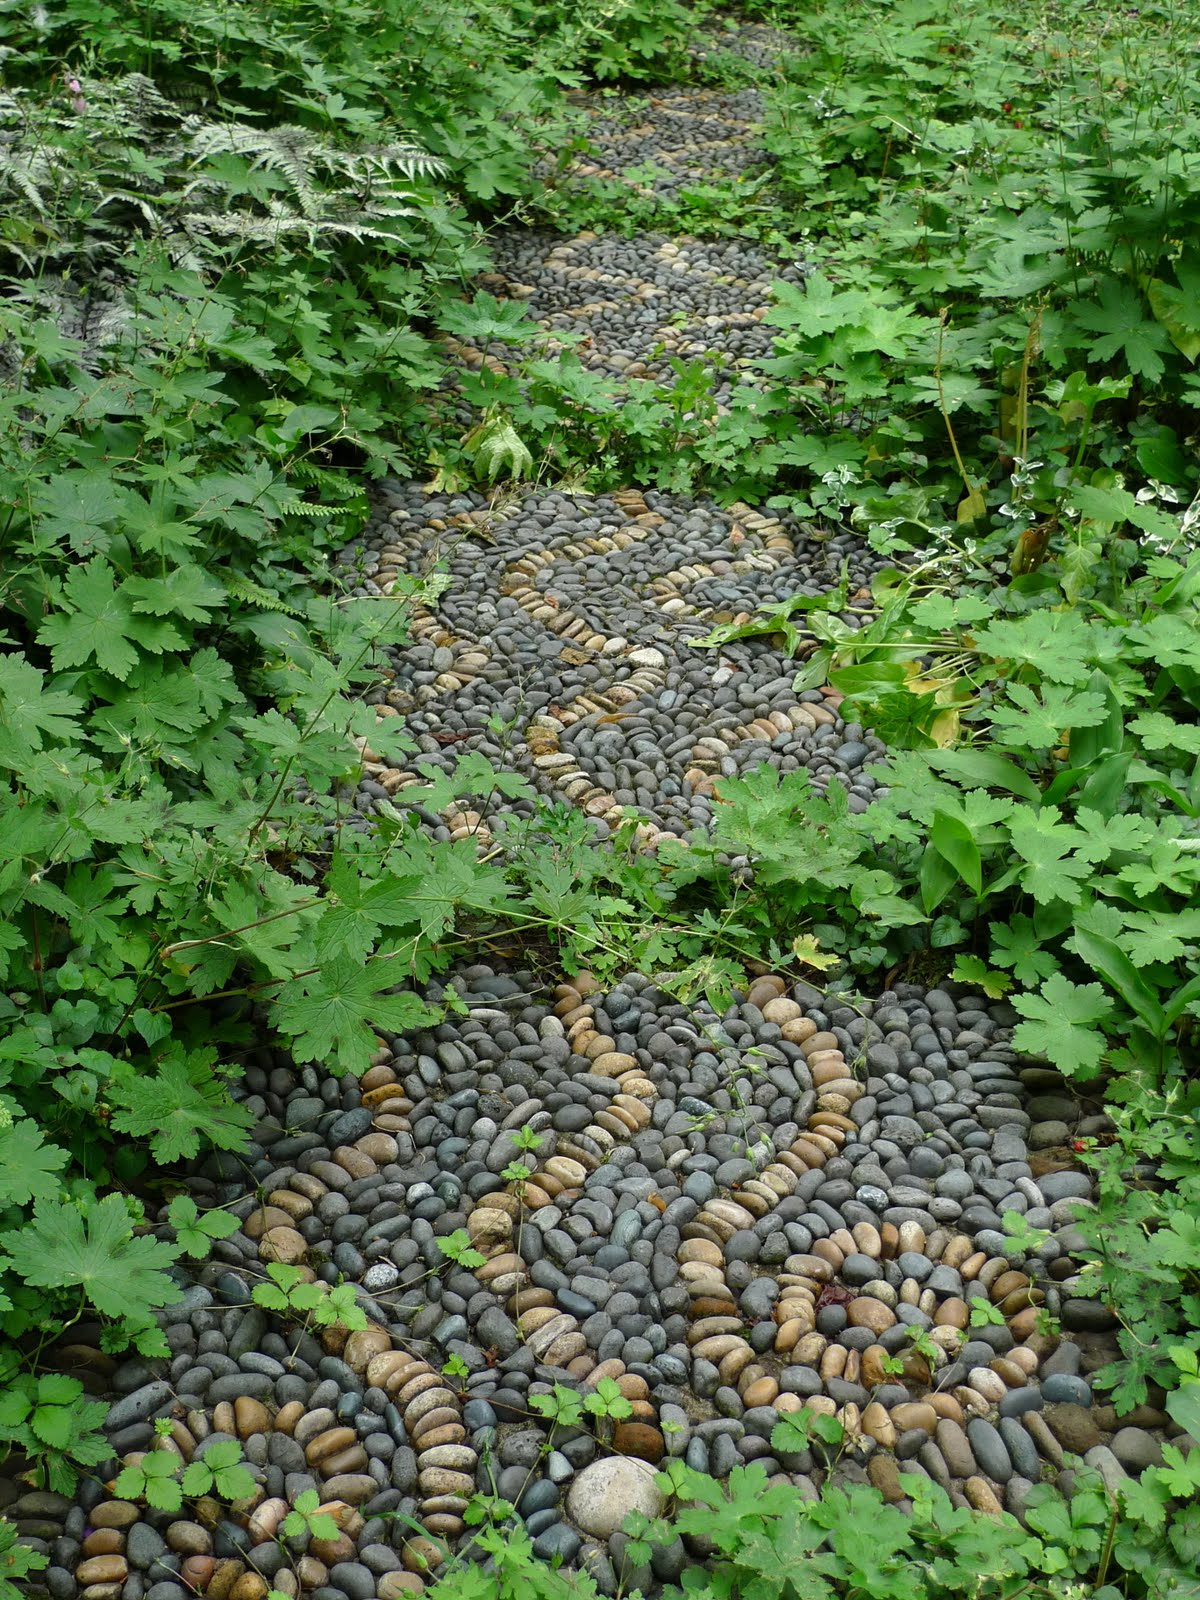 Jeffrey bale 39 s world of gardens building a pebble mosaic for Stone pebbles for garden